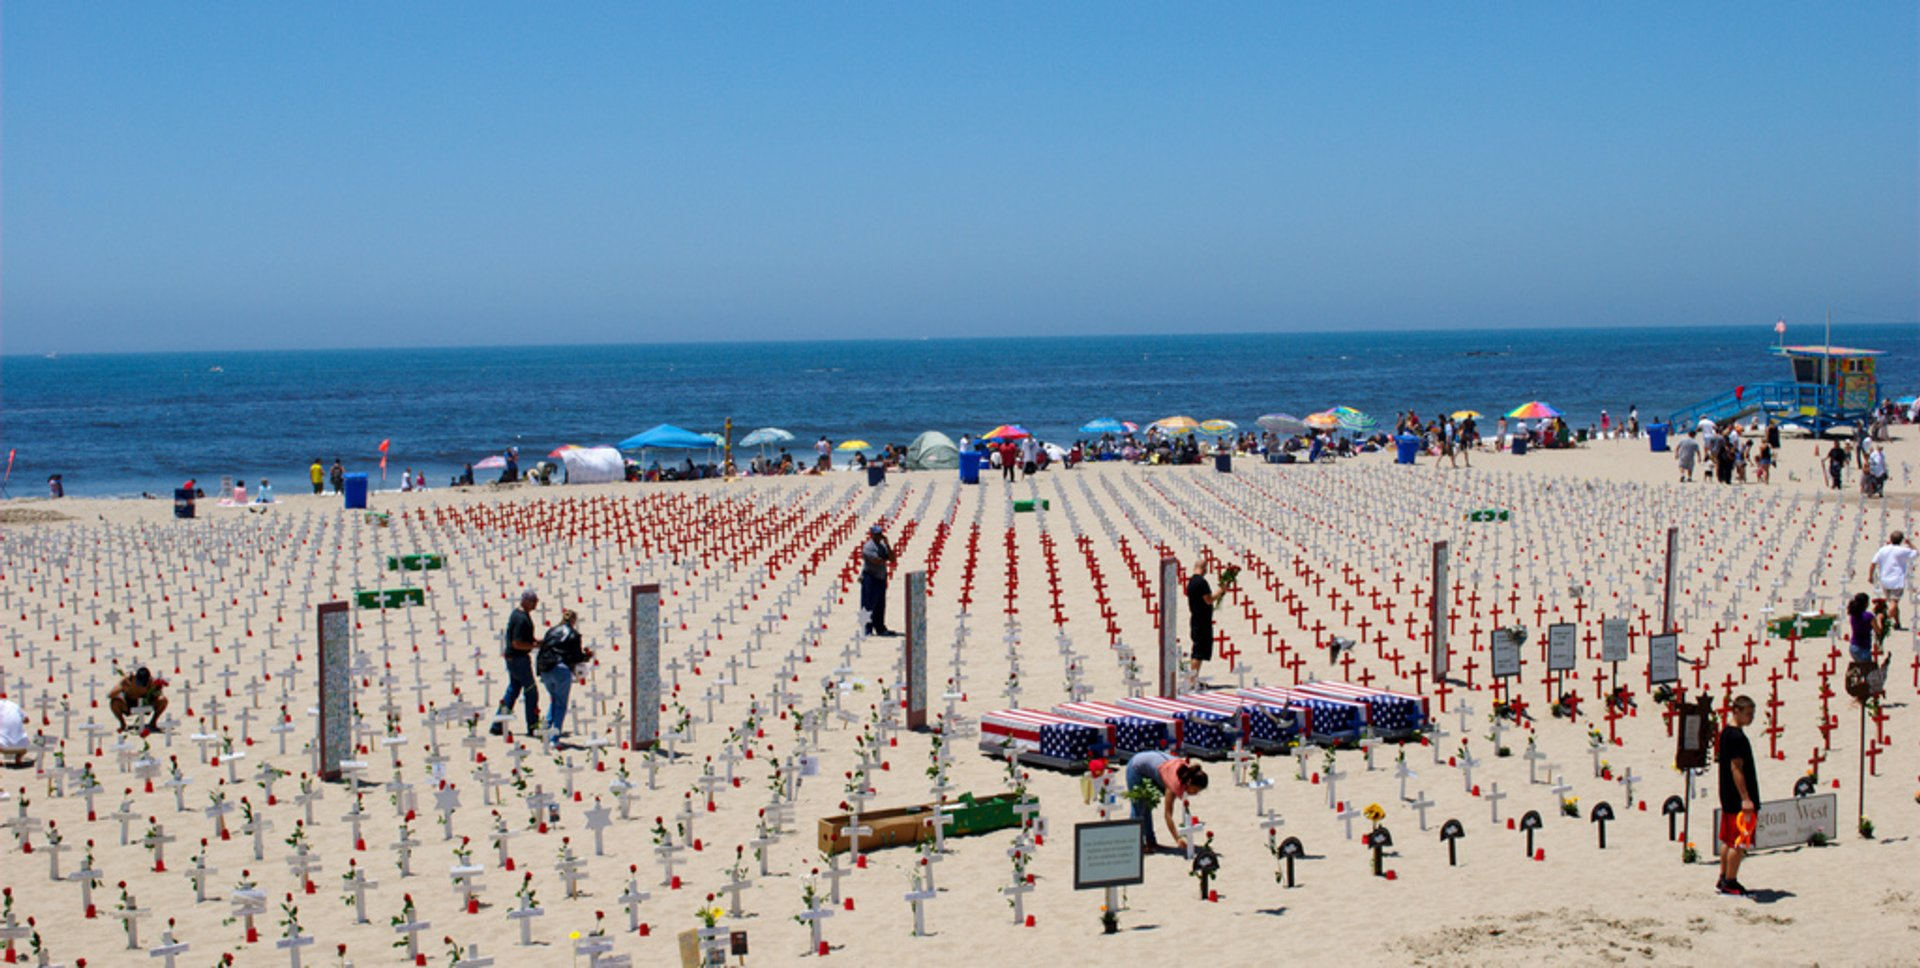 Memorial day on Santa Monica beach 2019